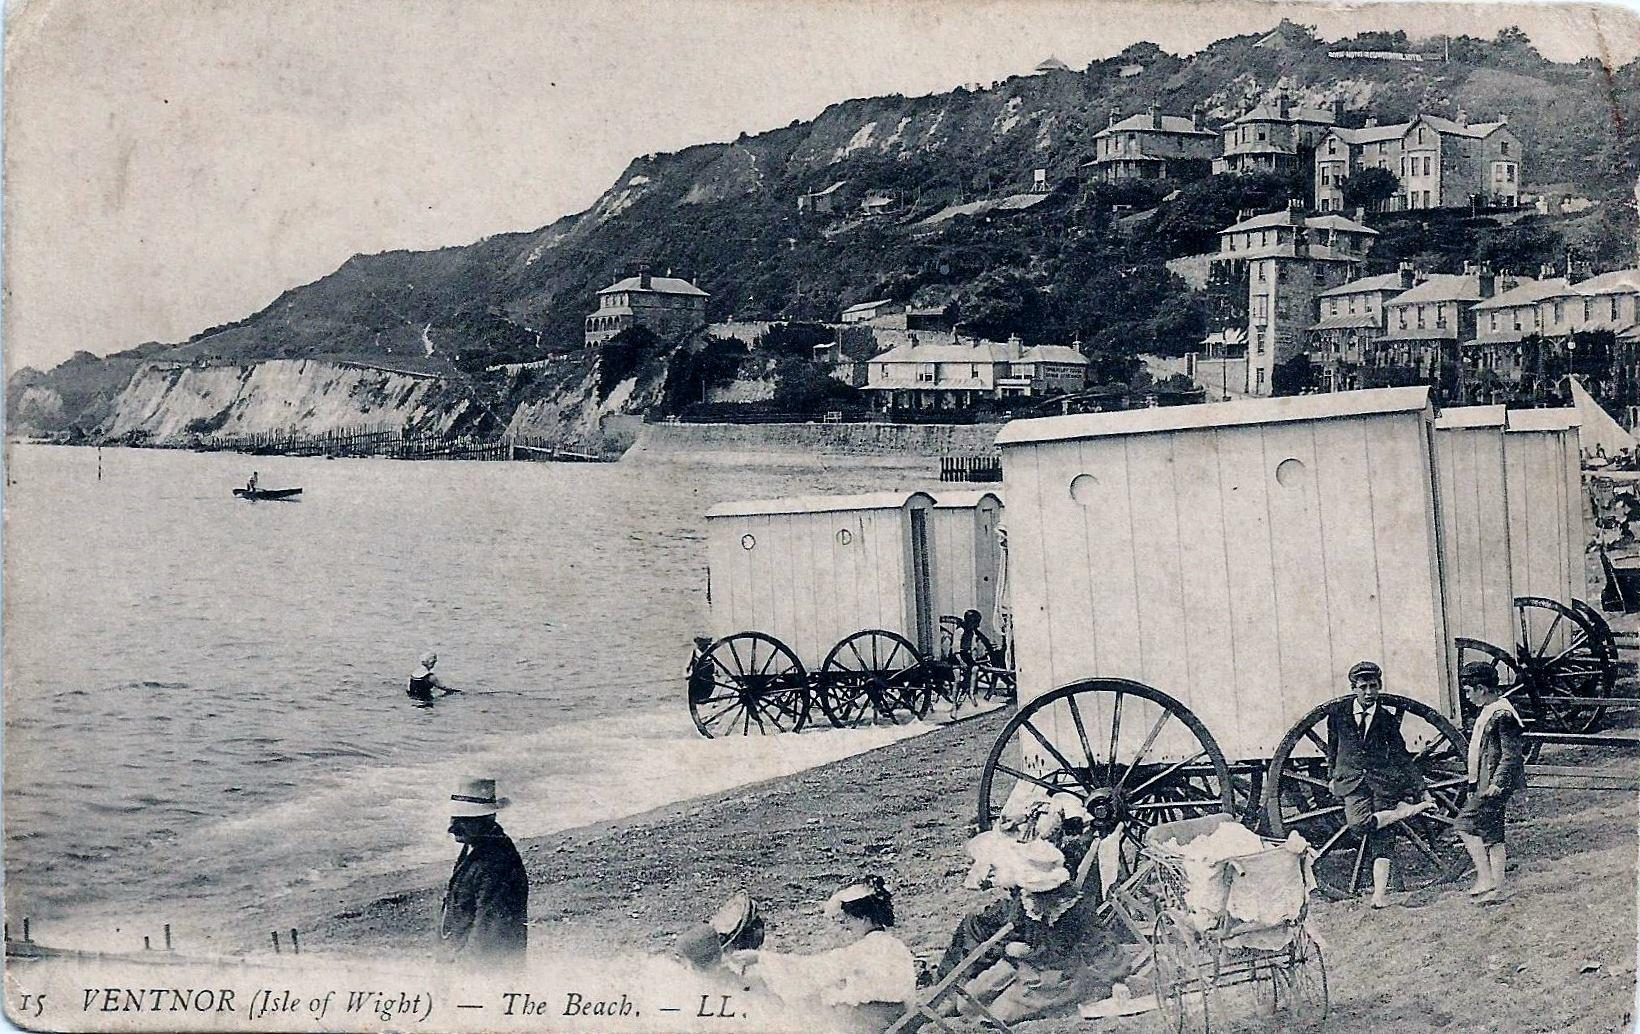 Ventnor-beach-bathing-machines.jpg#asset:2540